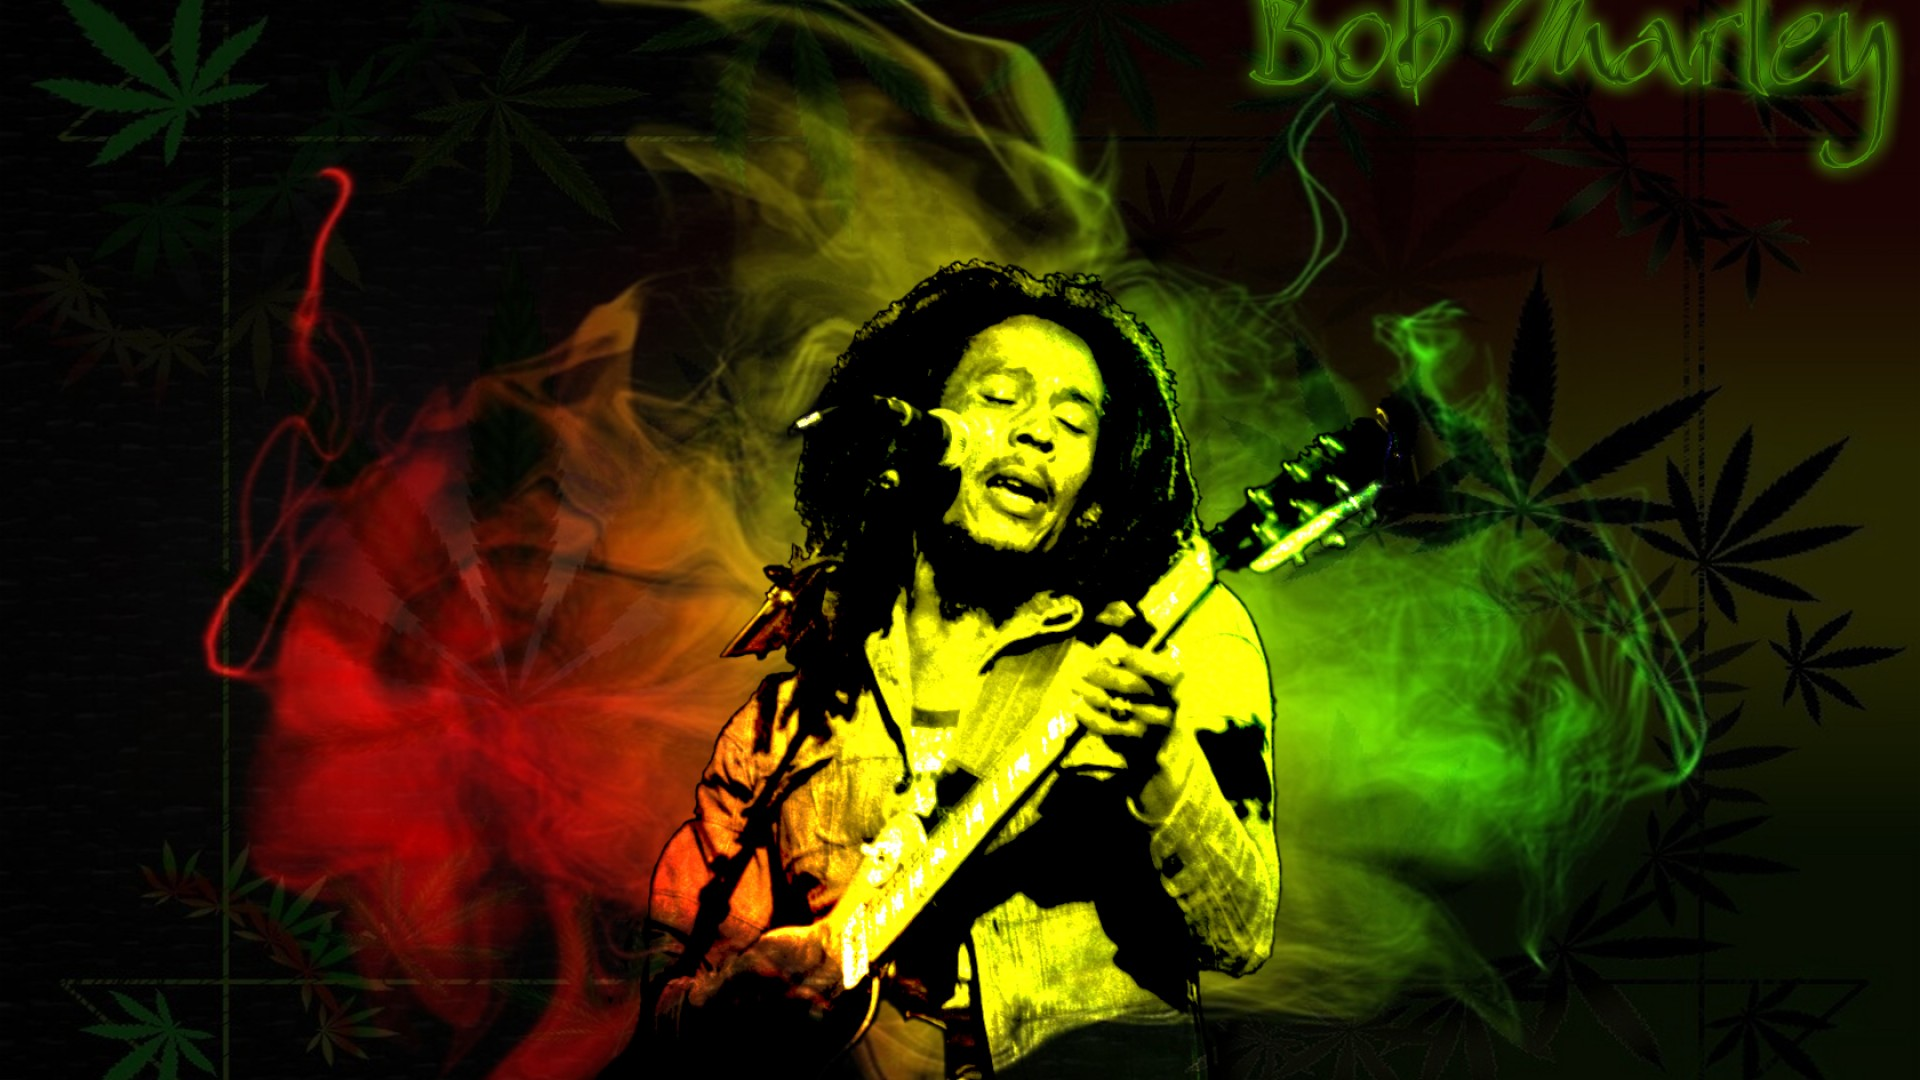 bob marley wallpaper guitar